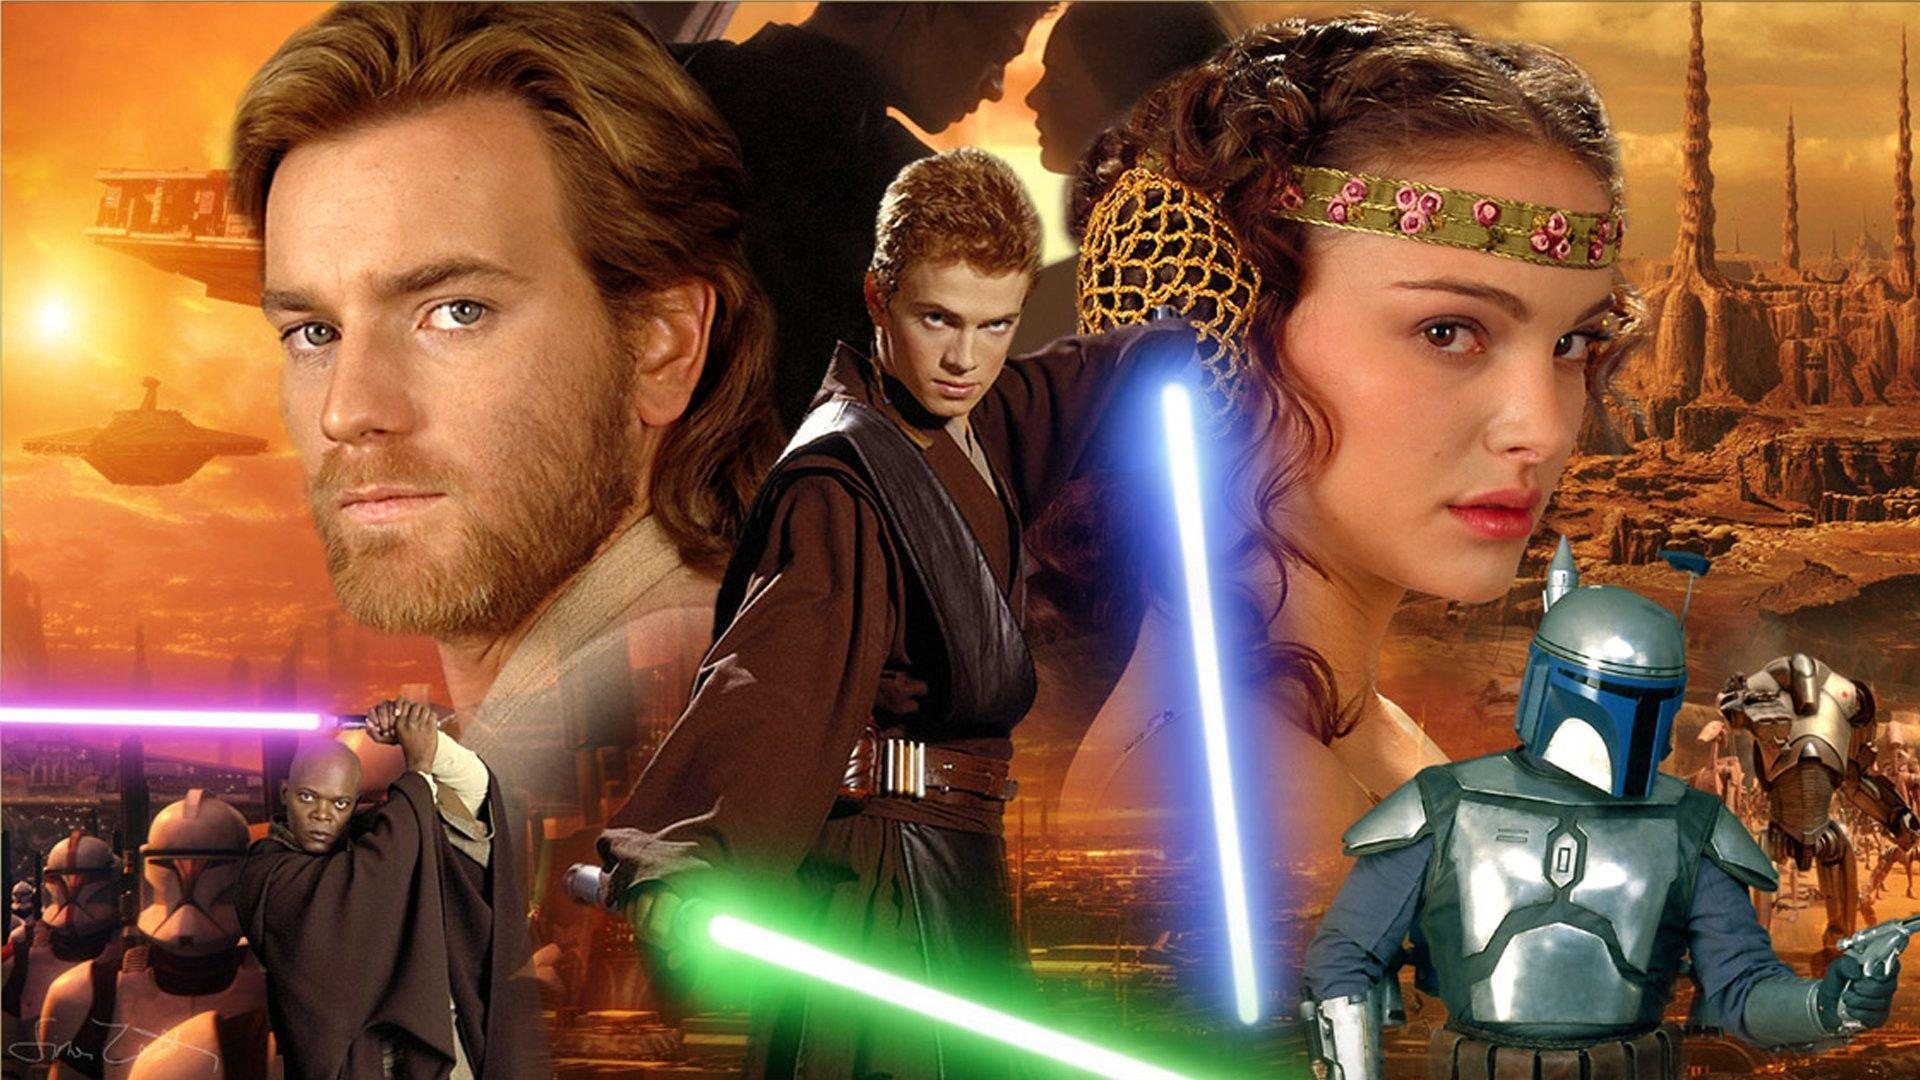 Star Wars Episode II – Attack of the Clones Wallpaper, Star Wars ...